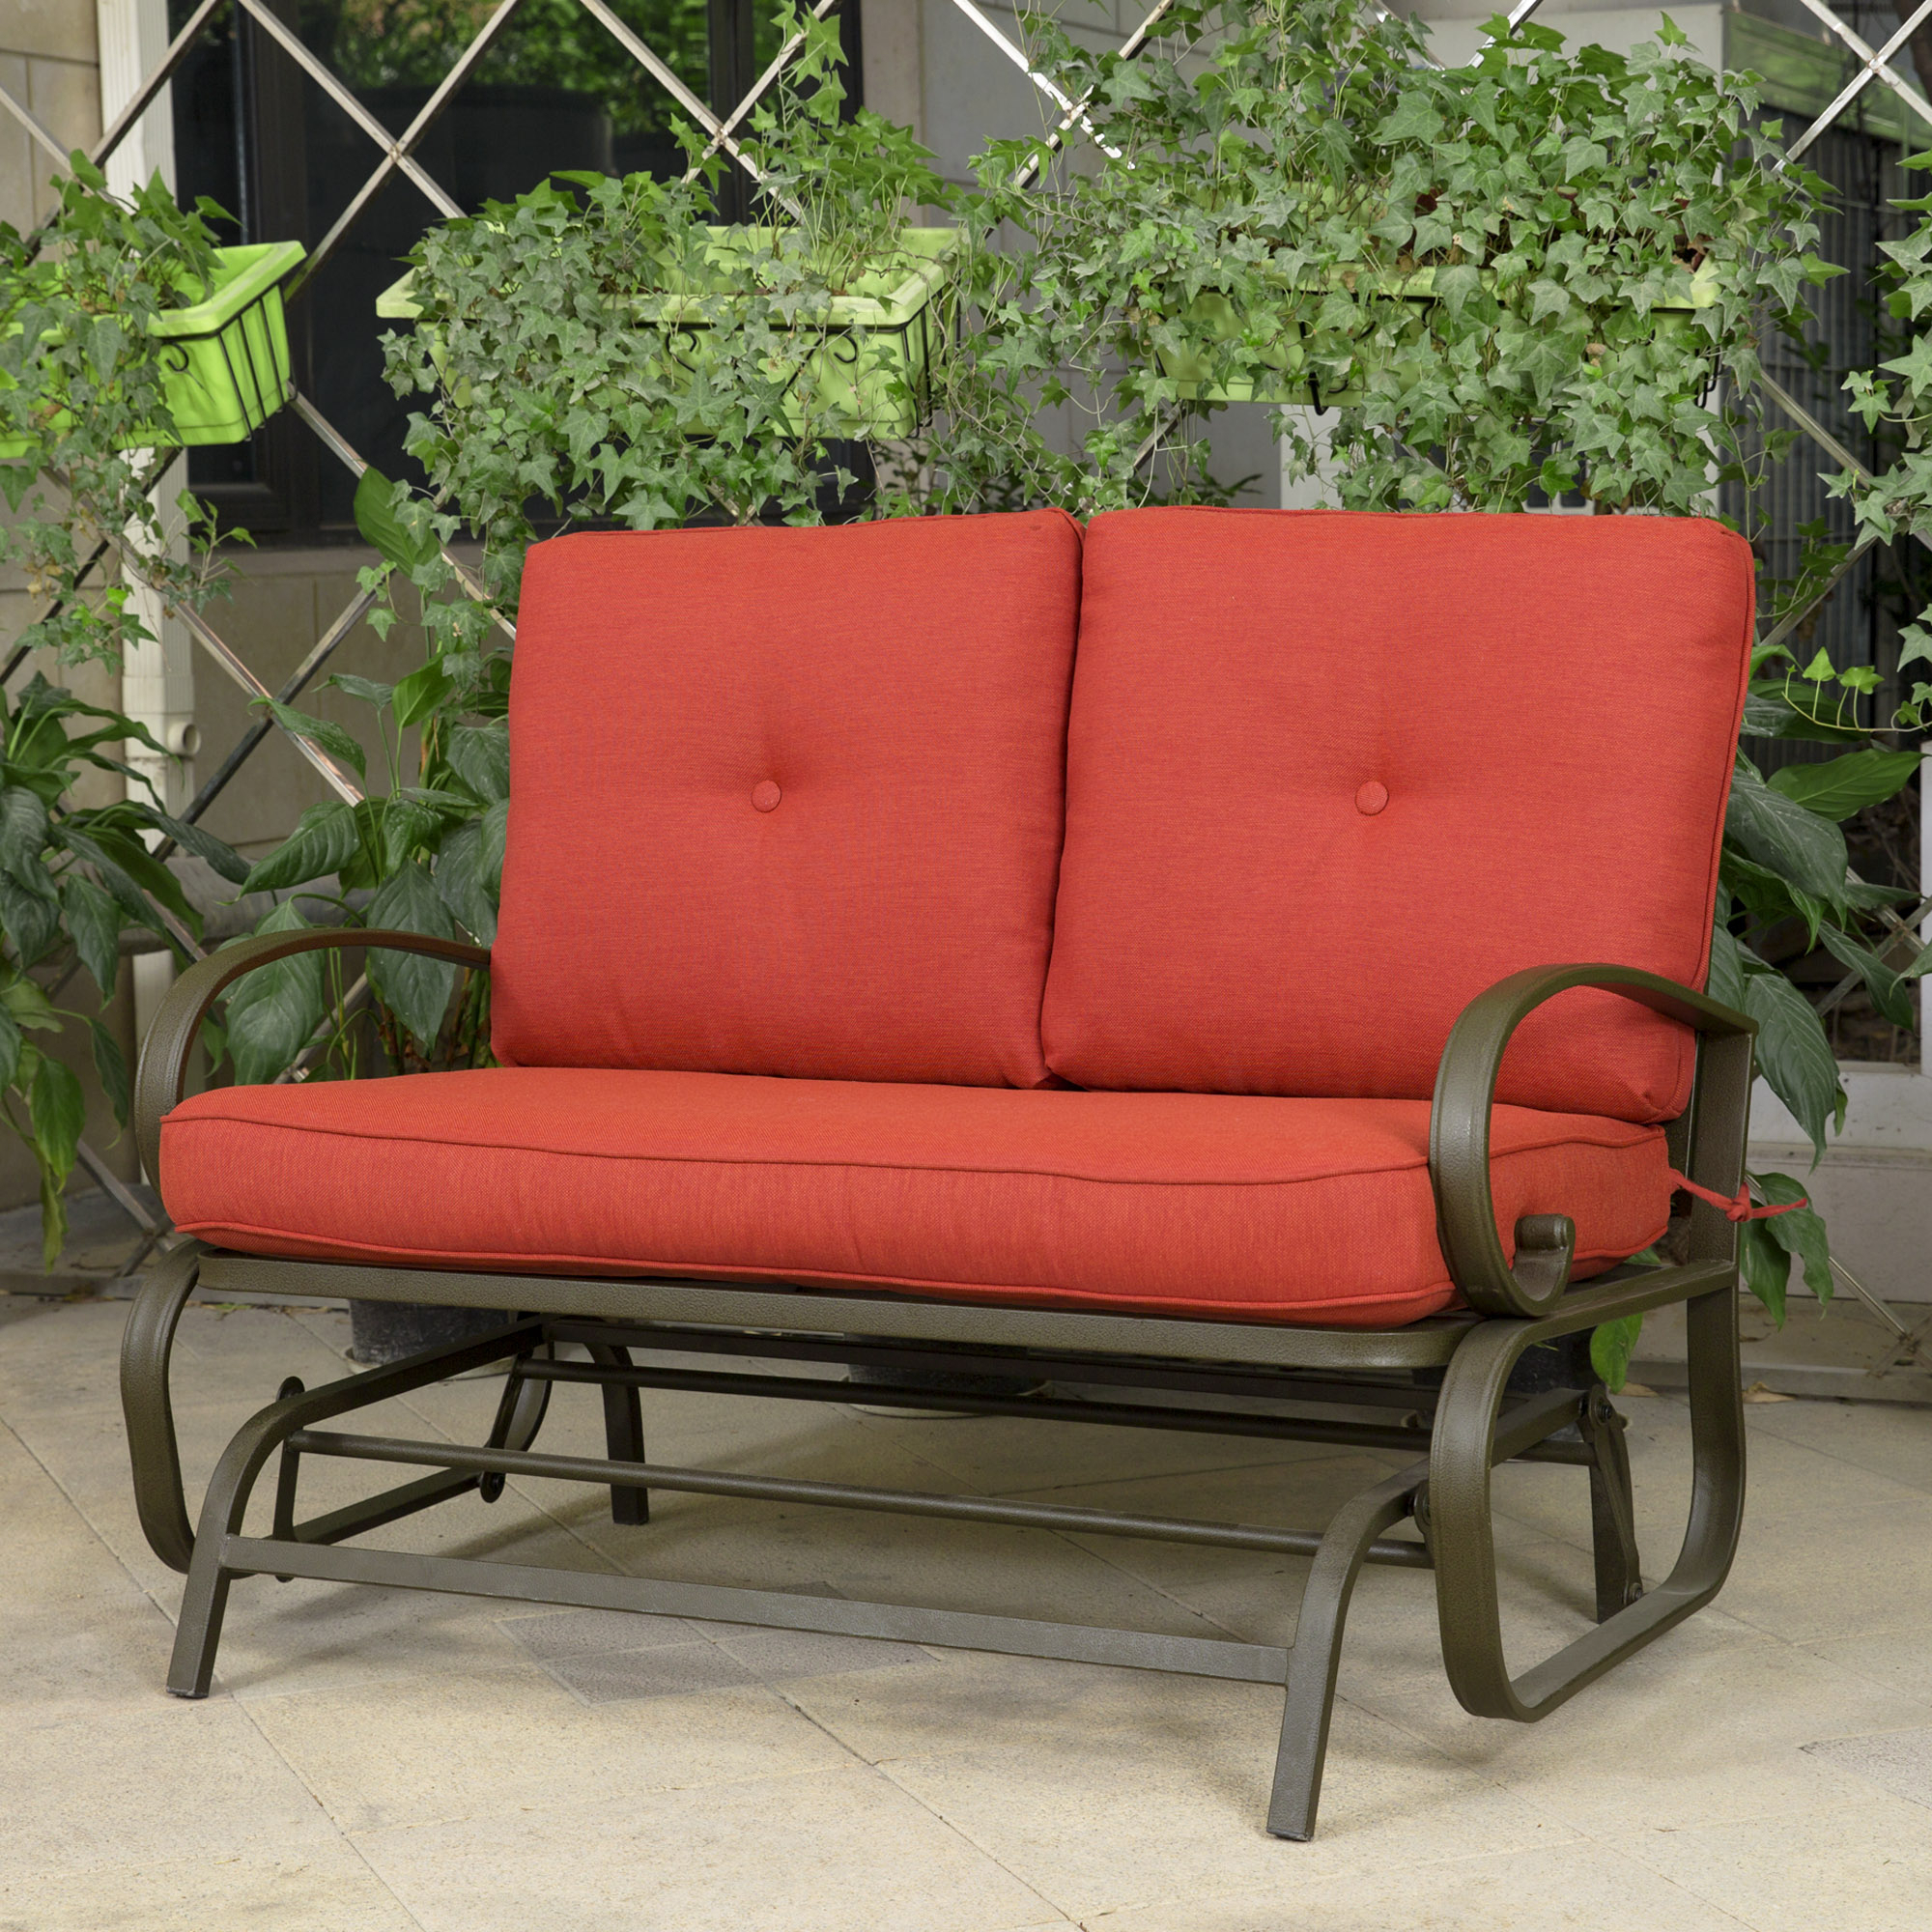 Widely Used Rocking Glider Benches In Gliders Patio Tree Patio Swing Glider Bench For 2 Person All (Gallery 23 of 30)